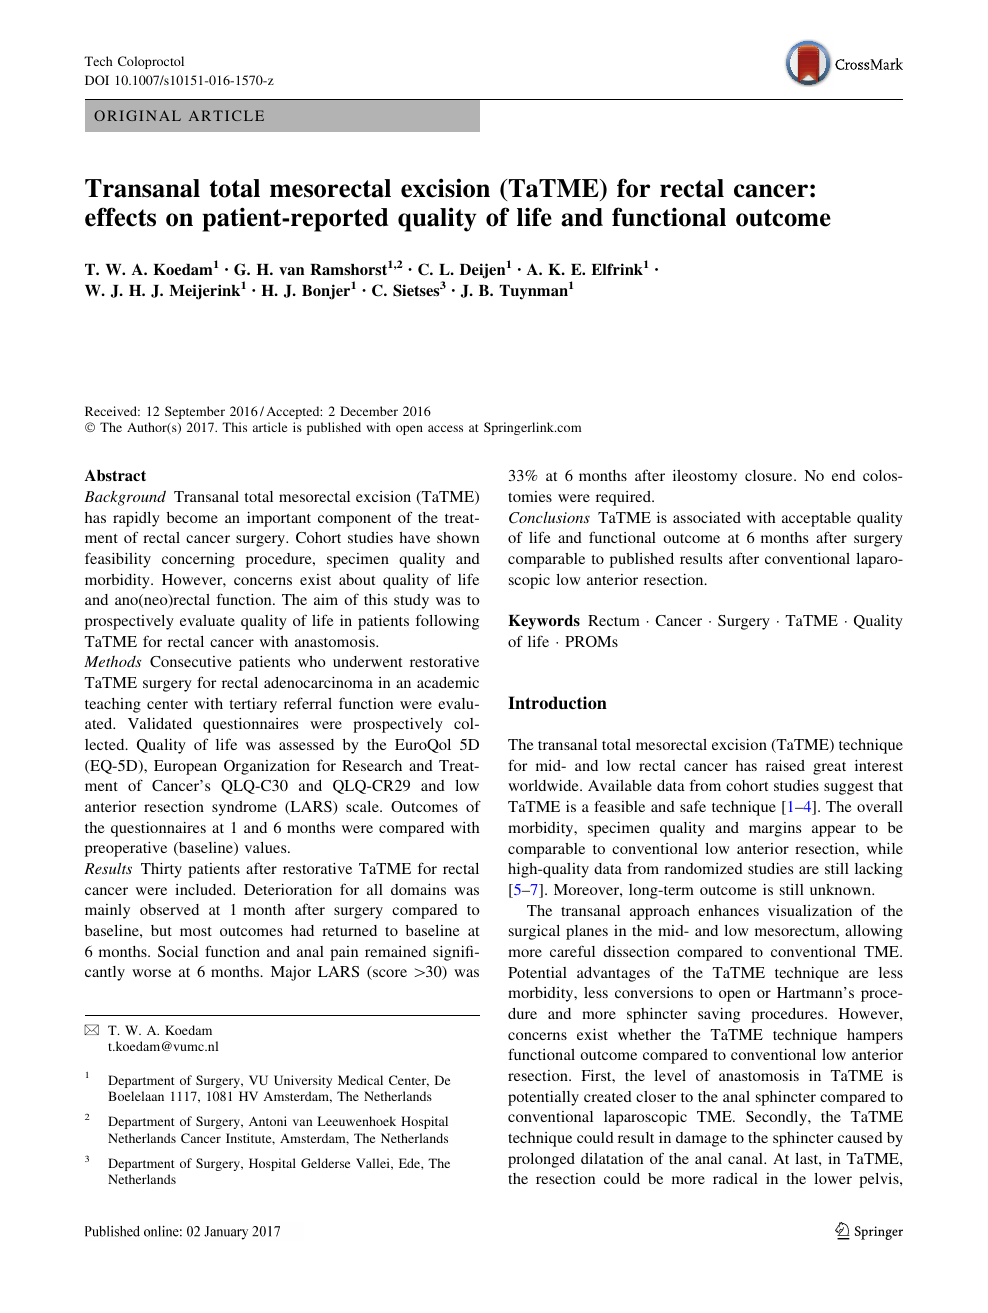 rectal cancer quality of life